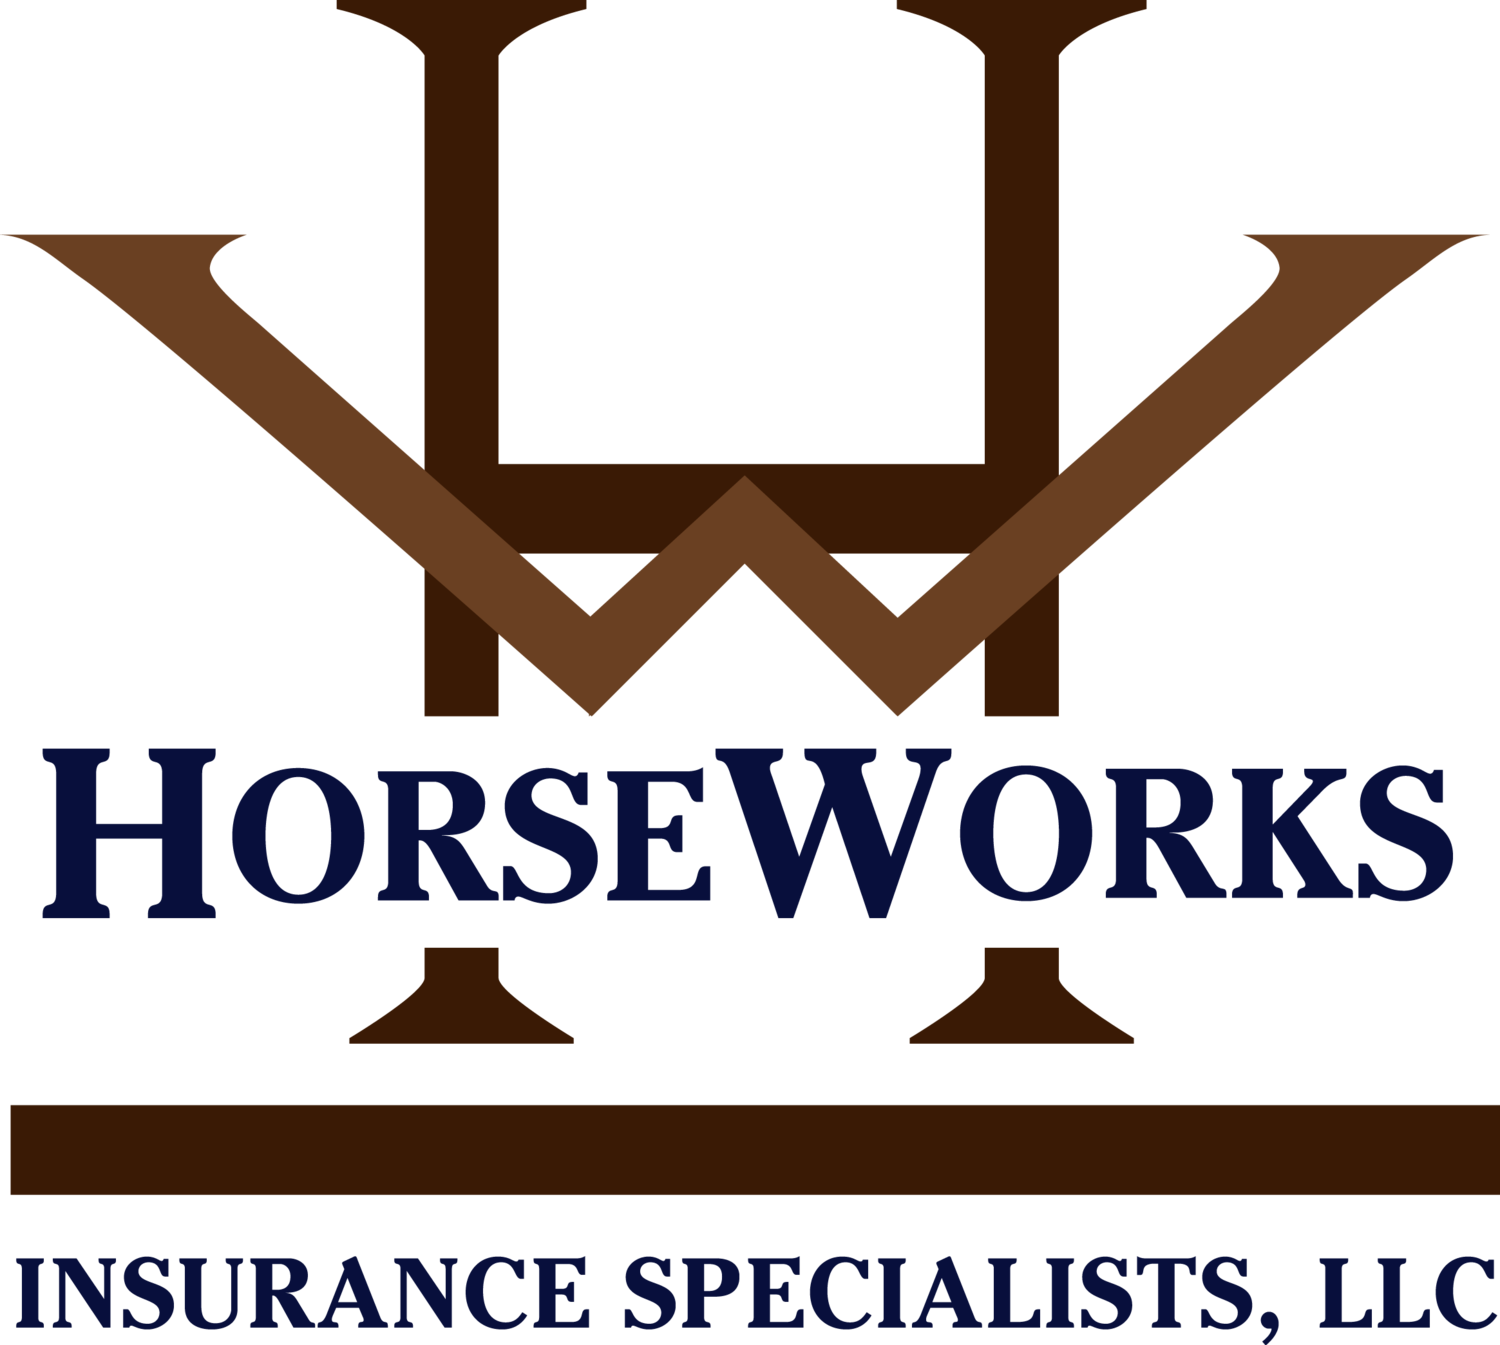 HorseWorks Insurance Specialists